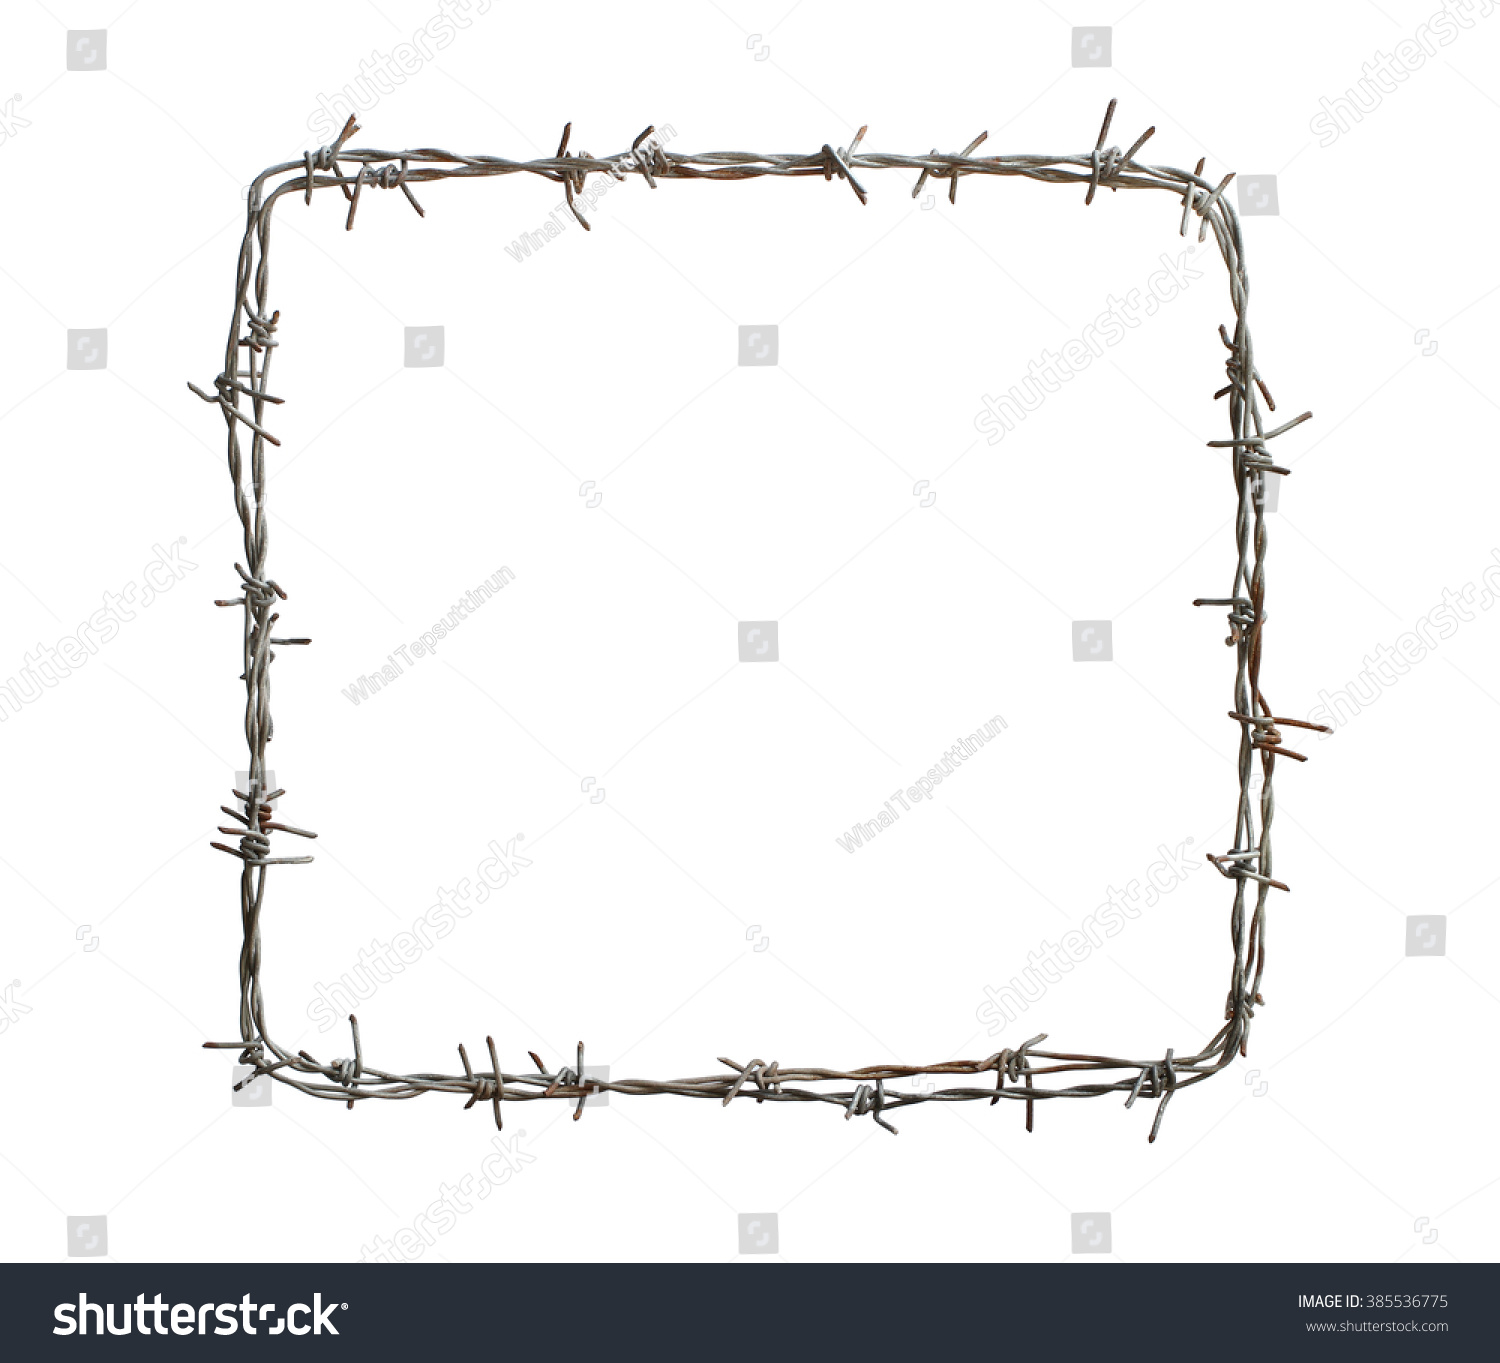 Royalty-free Barbed wire square isolated on white… #385536775 Stock ...